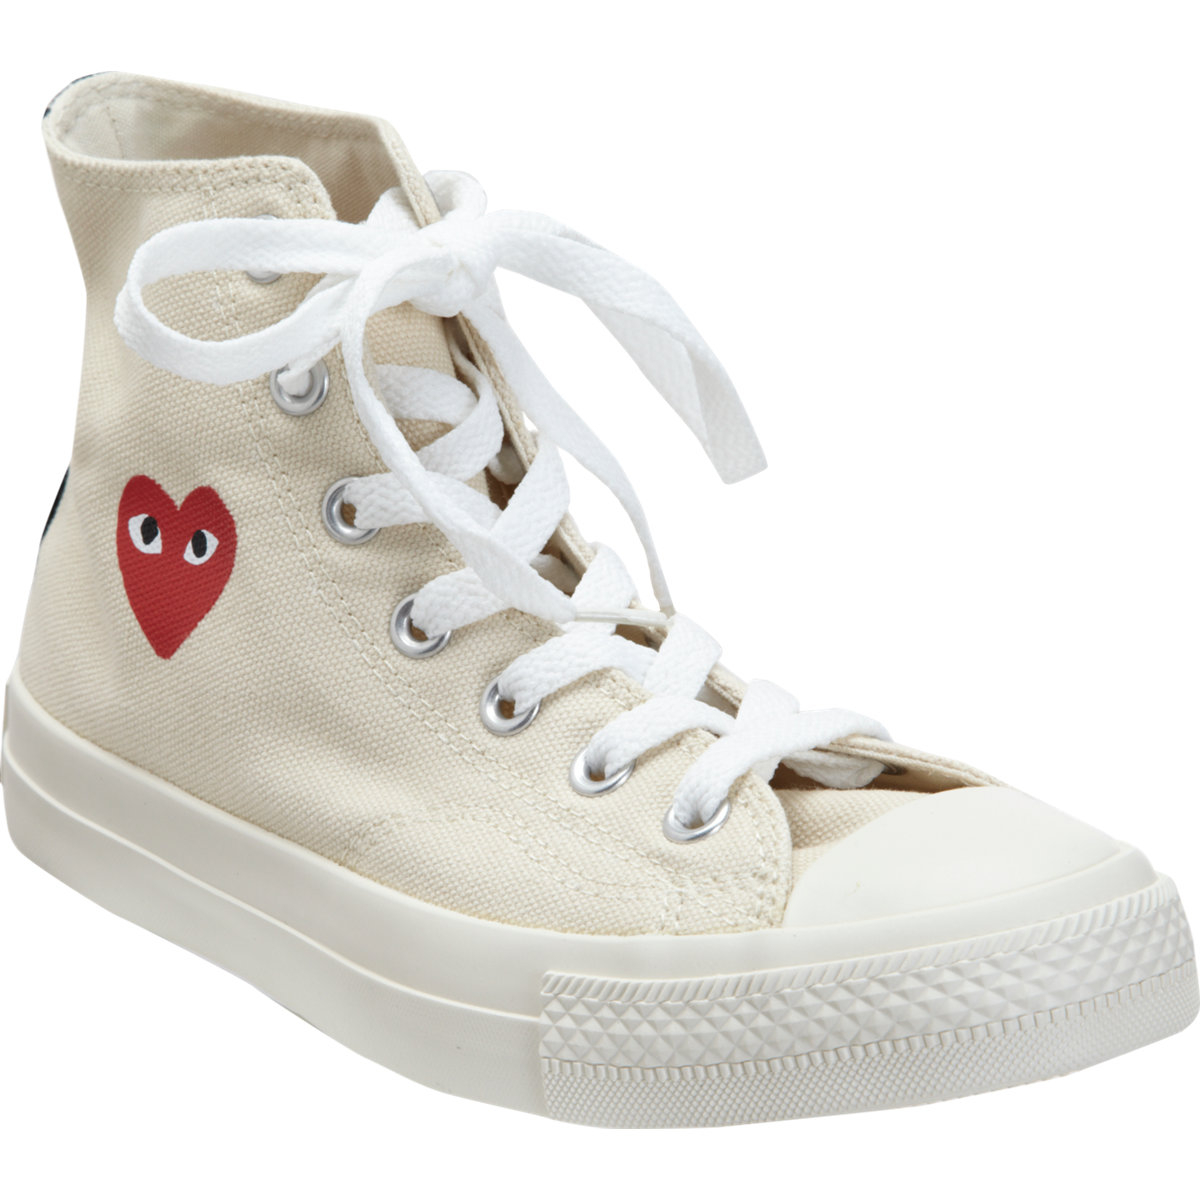 522e61f9d60 Lyst - Play Comme des Garçons Play Chuck Taylor All Star Canvas High ...